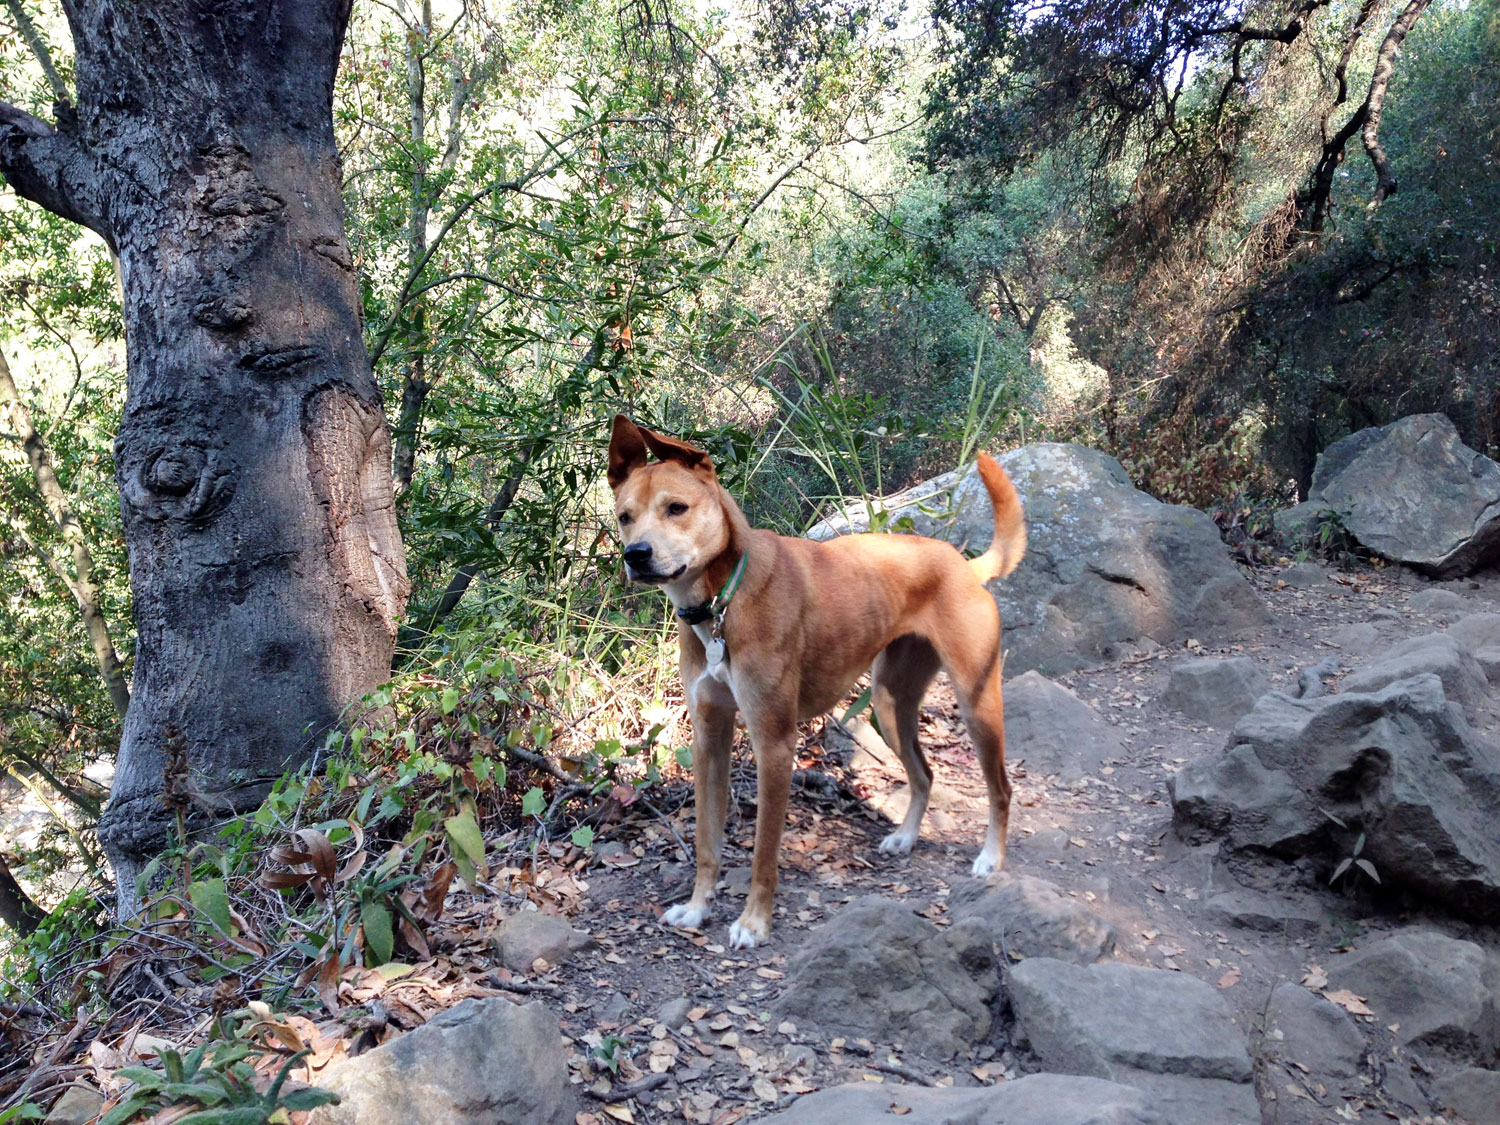 Zoe 'n Me {a dog blog} The all together pack | Jordan benShea | Santa Barbara, California